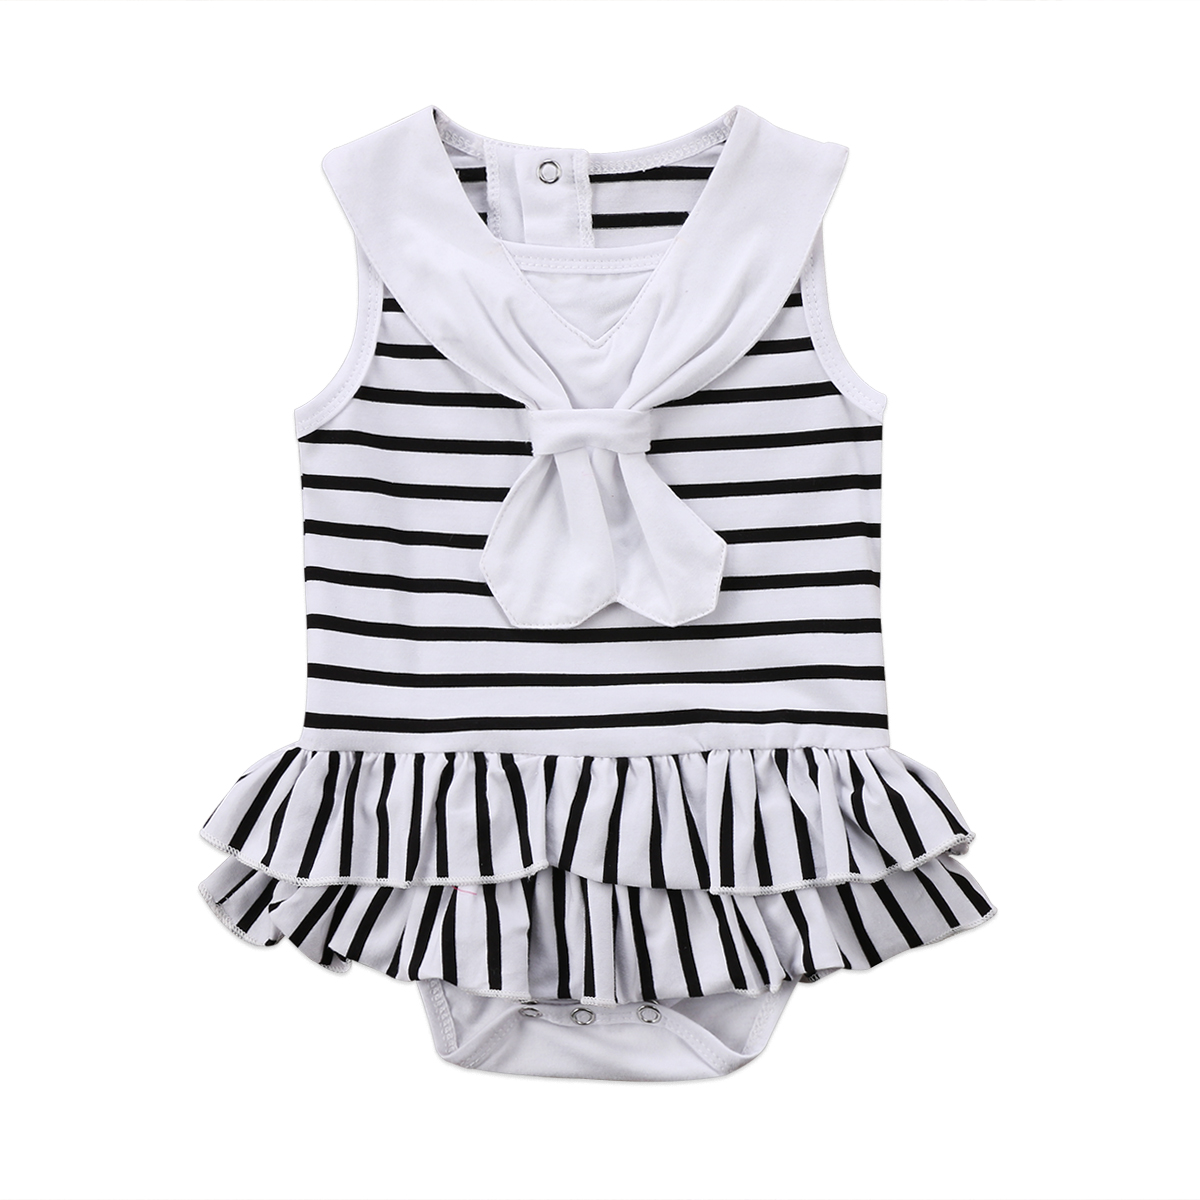 Lovely Newborn Toddler Girls Clothes Easter Rabbit Print Striped Romper Jumpsuit